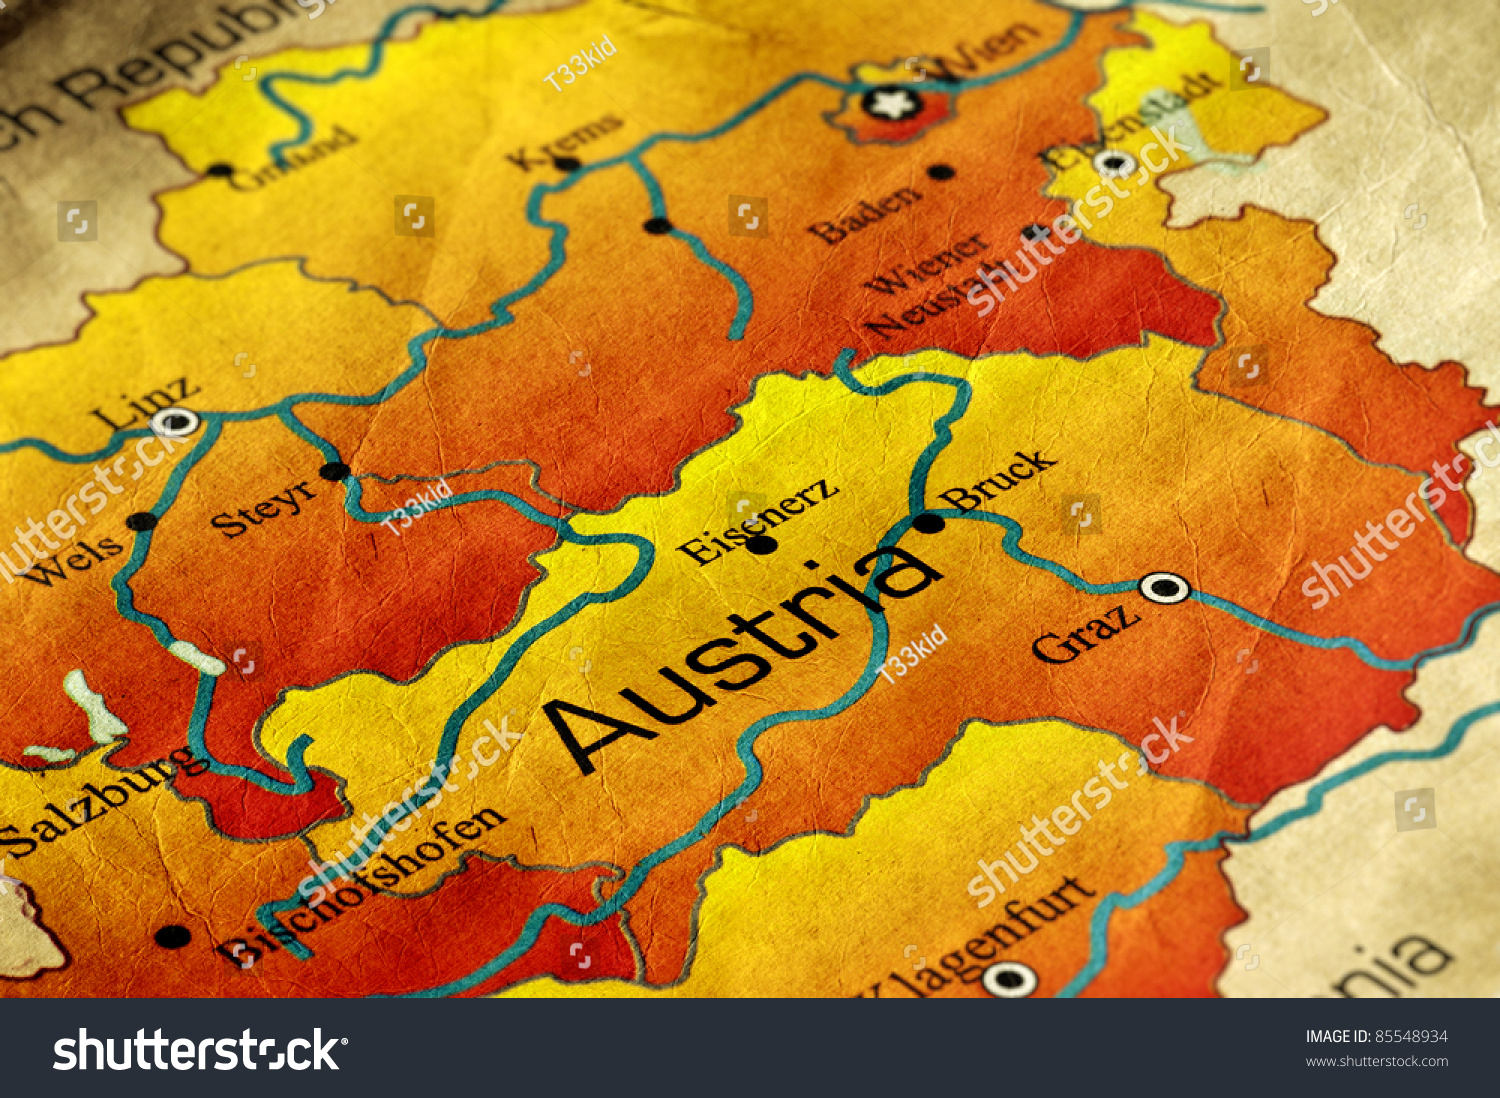 Ancient world map austria stock photo royalty free 85548934 ancient world map austria stock photo royalty free 85548934 shutterstock gumiabroncs Images